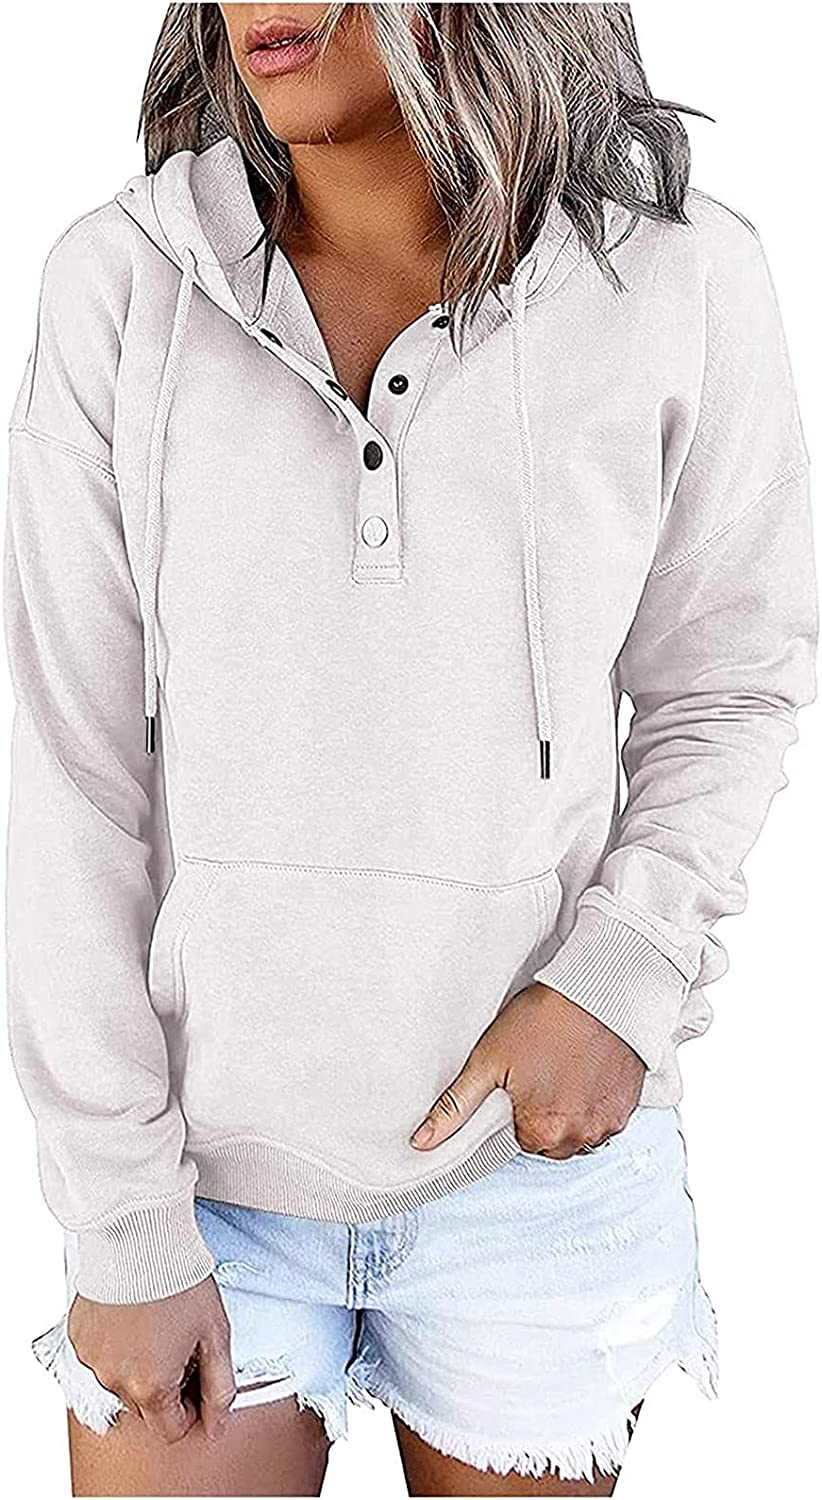 Long-Sleeved Hooded Sweatshirt For Women Casual Solid Soft Butto